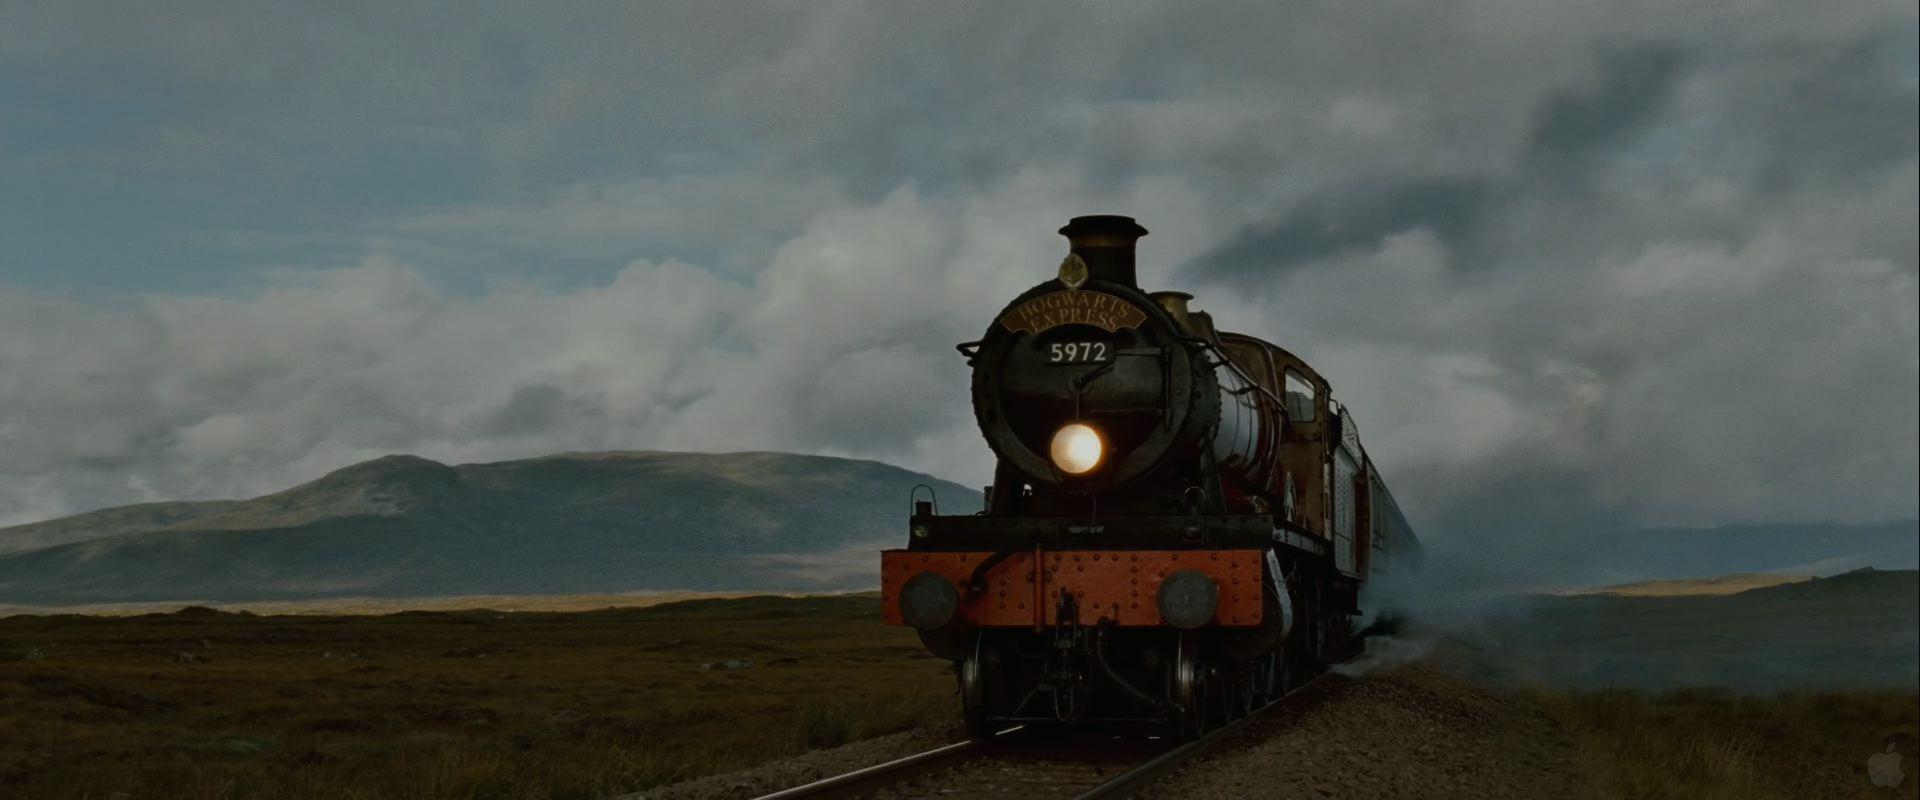 Hd wallpaper harry potter - Hogwarts Express Train From Harry Potter And The Deathly Hallows